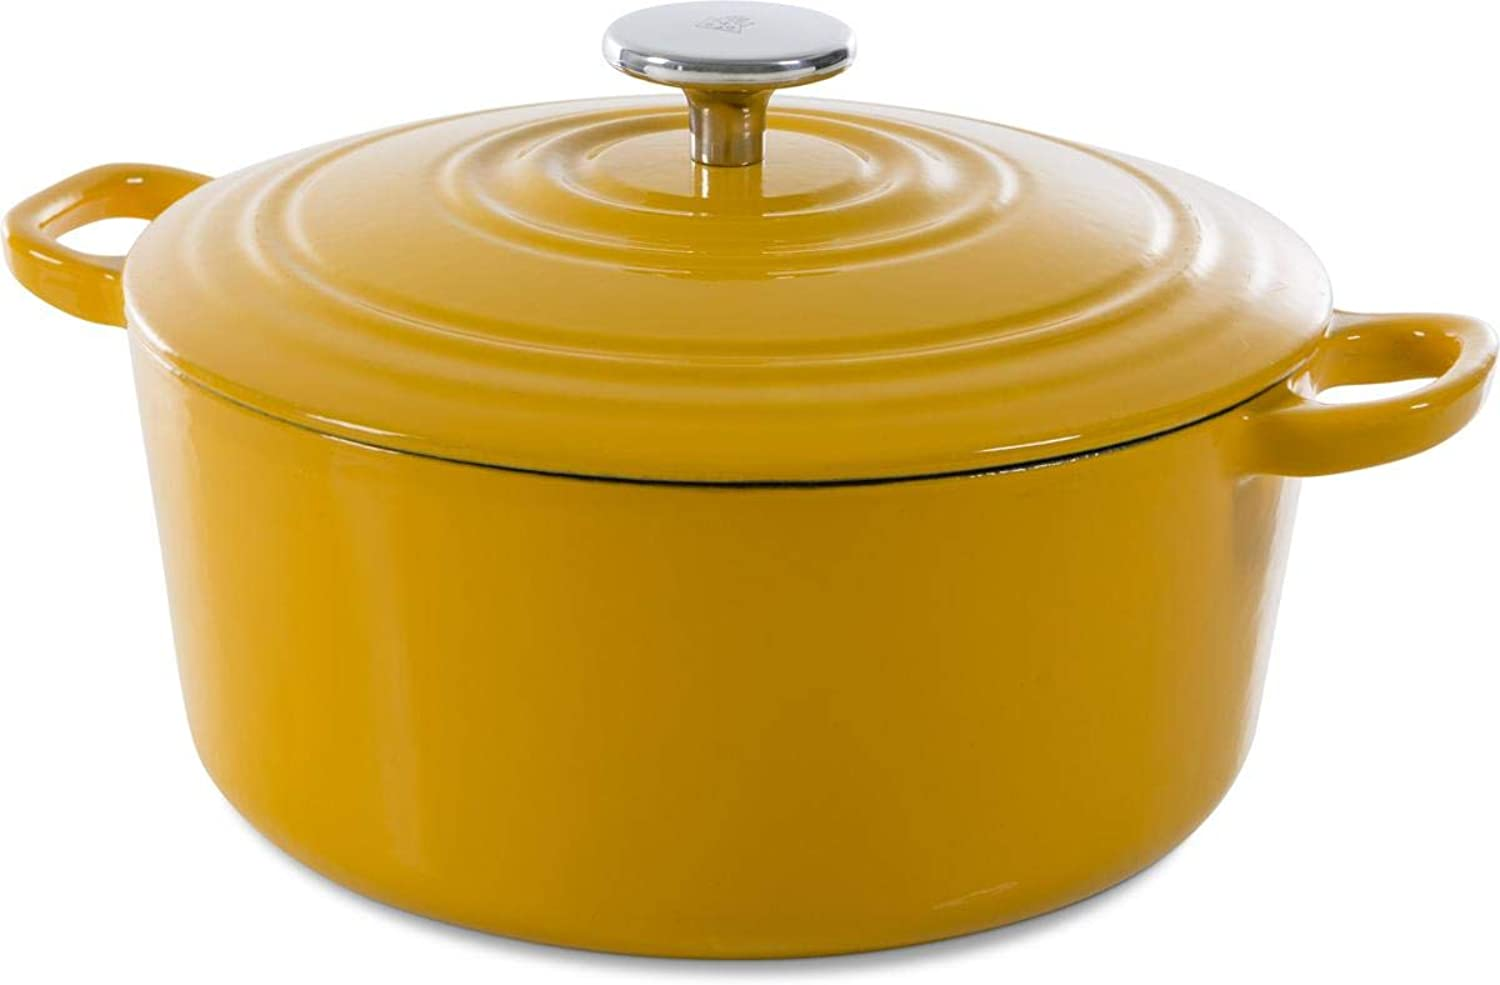 BK H6075.528 Nature Cast Iron Pan 7QT Yellow